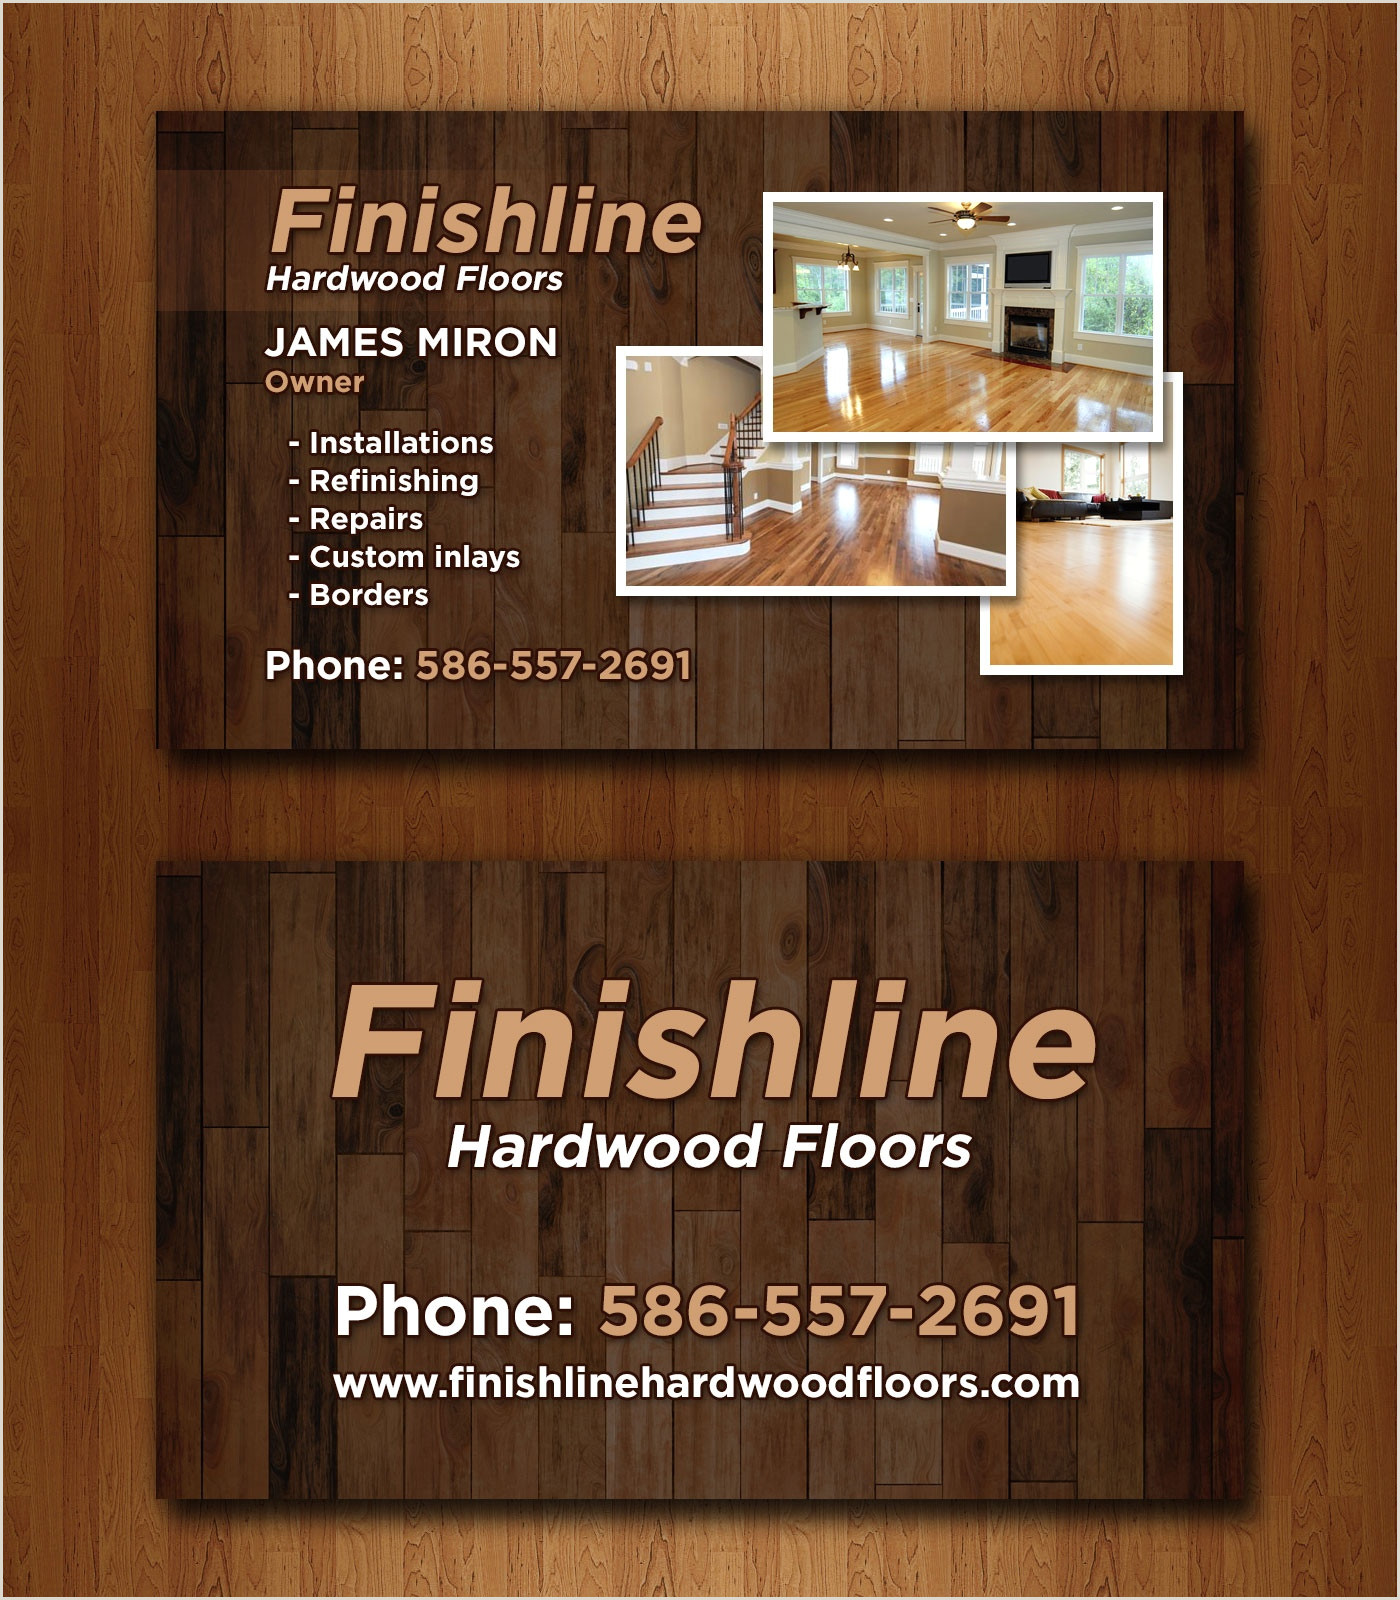 Making Business Card In Word 14 Popular Hardwood Flooring Business Card Template